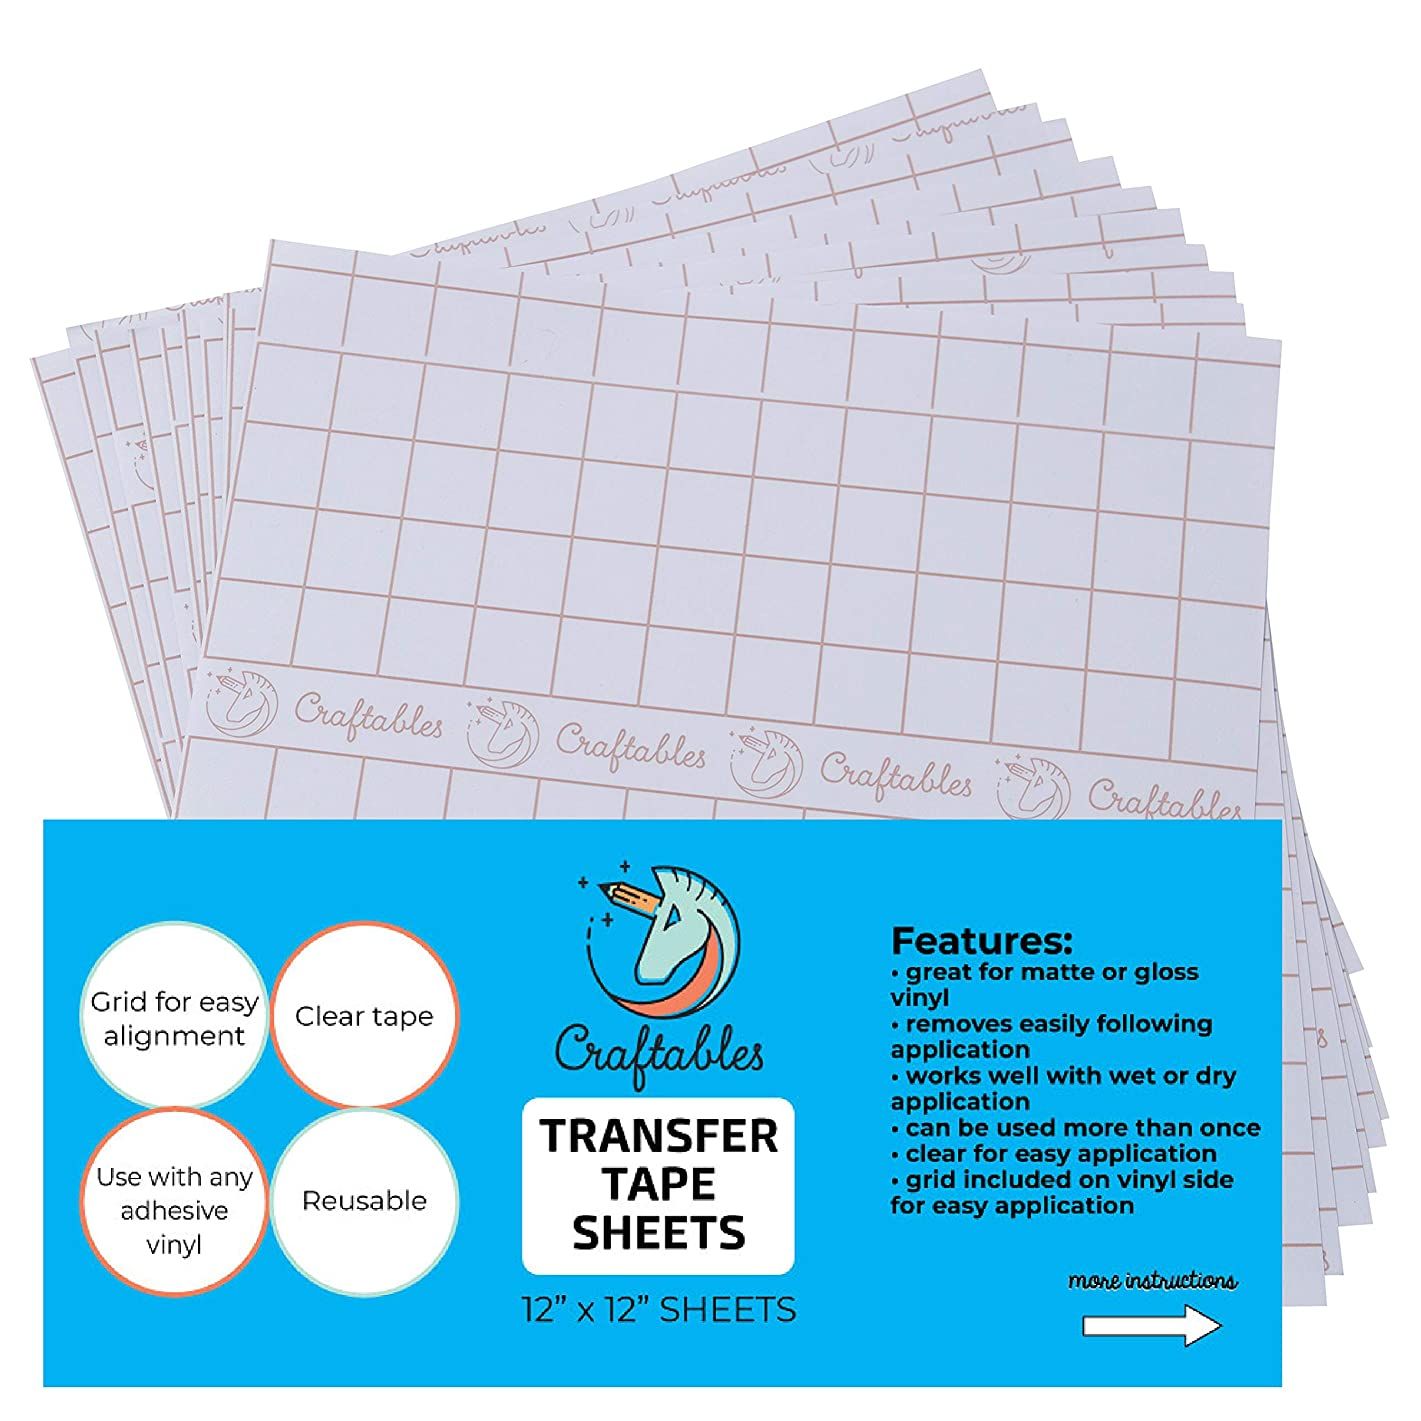 Craftables Clear Vinyl Tranfser Paper Tape Sheets w/Alignment Grid and Easy Release Paper | 12